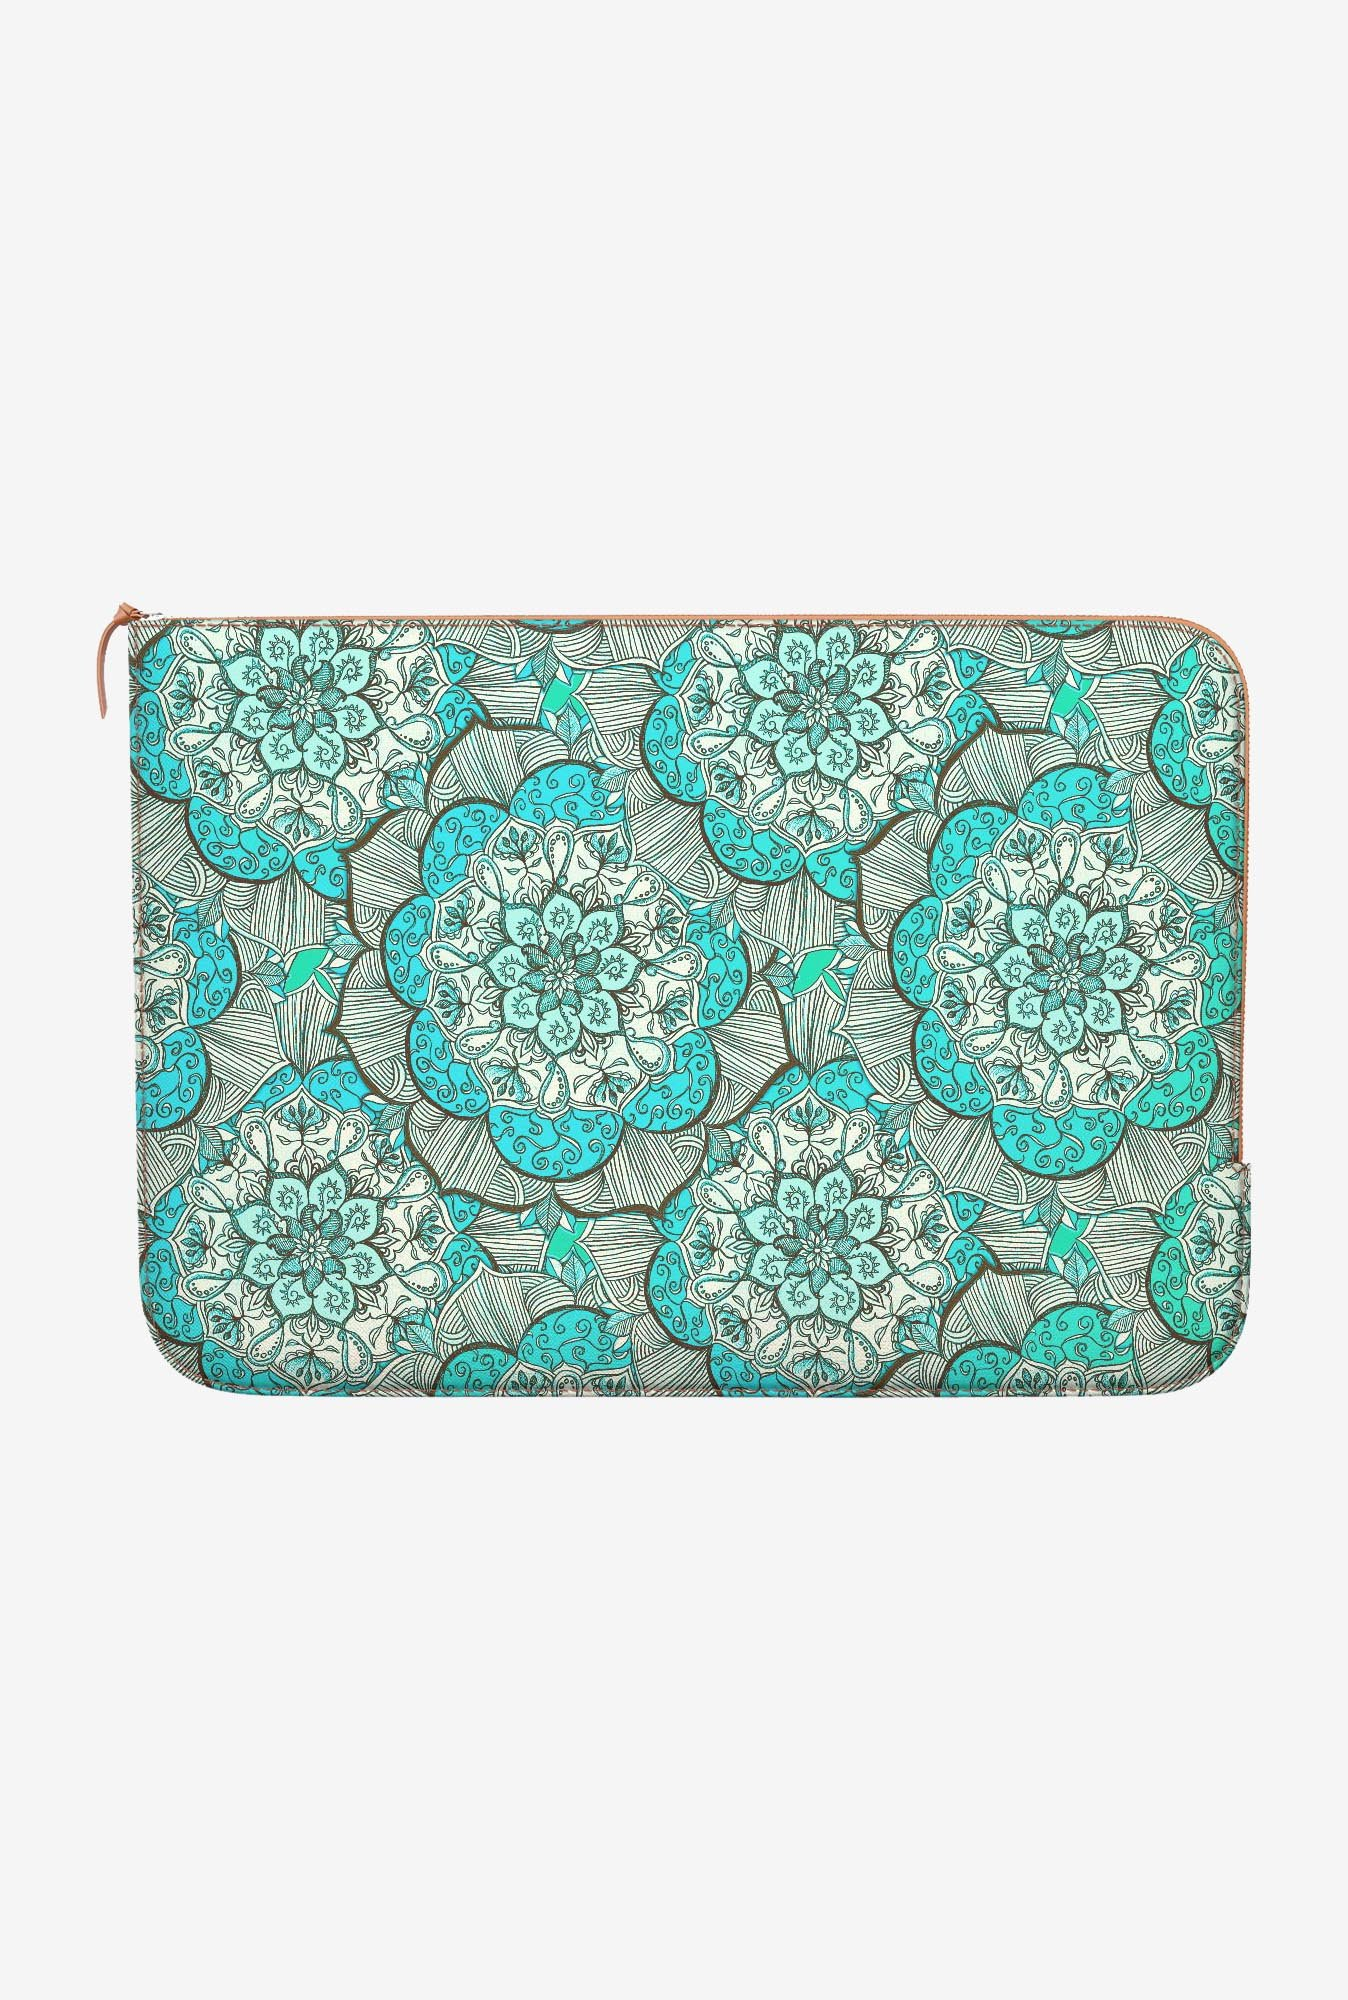 DailyObjects Fresh Doodle MacBook Pro 15 Zippered Sleeve